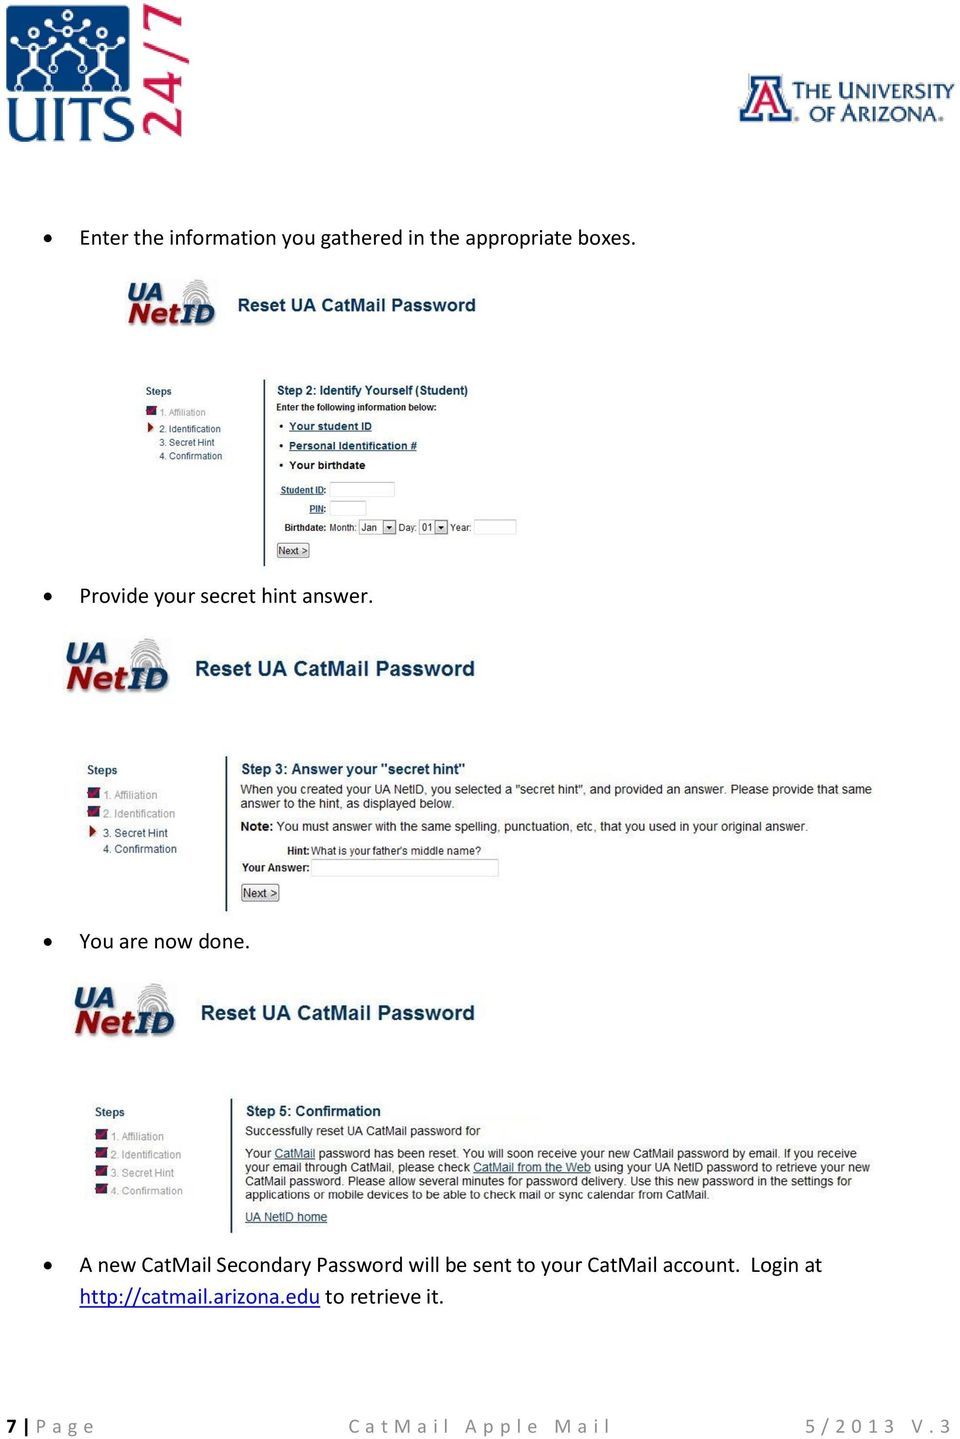 A new CatMail Secondary Password will be sent to your CatMail account.